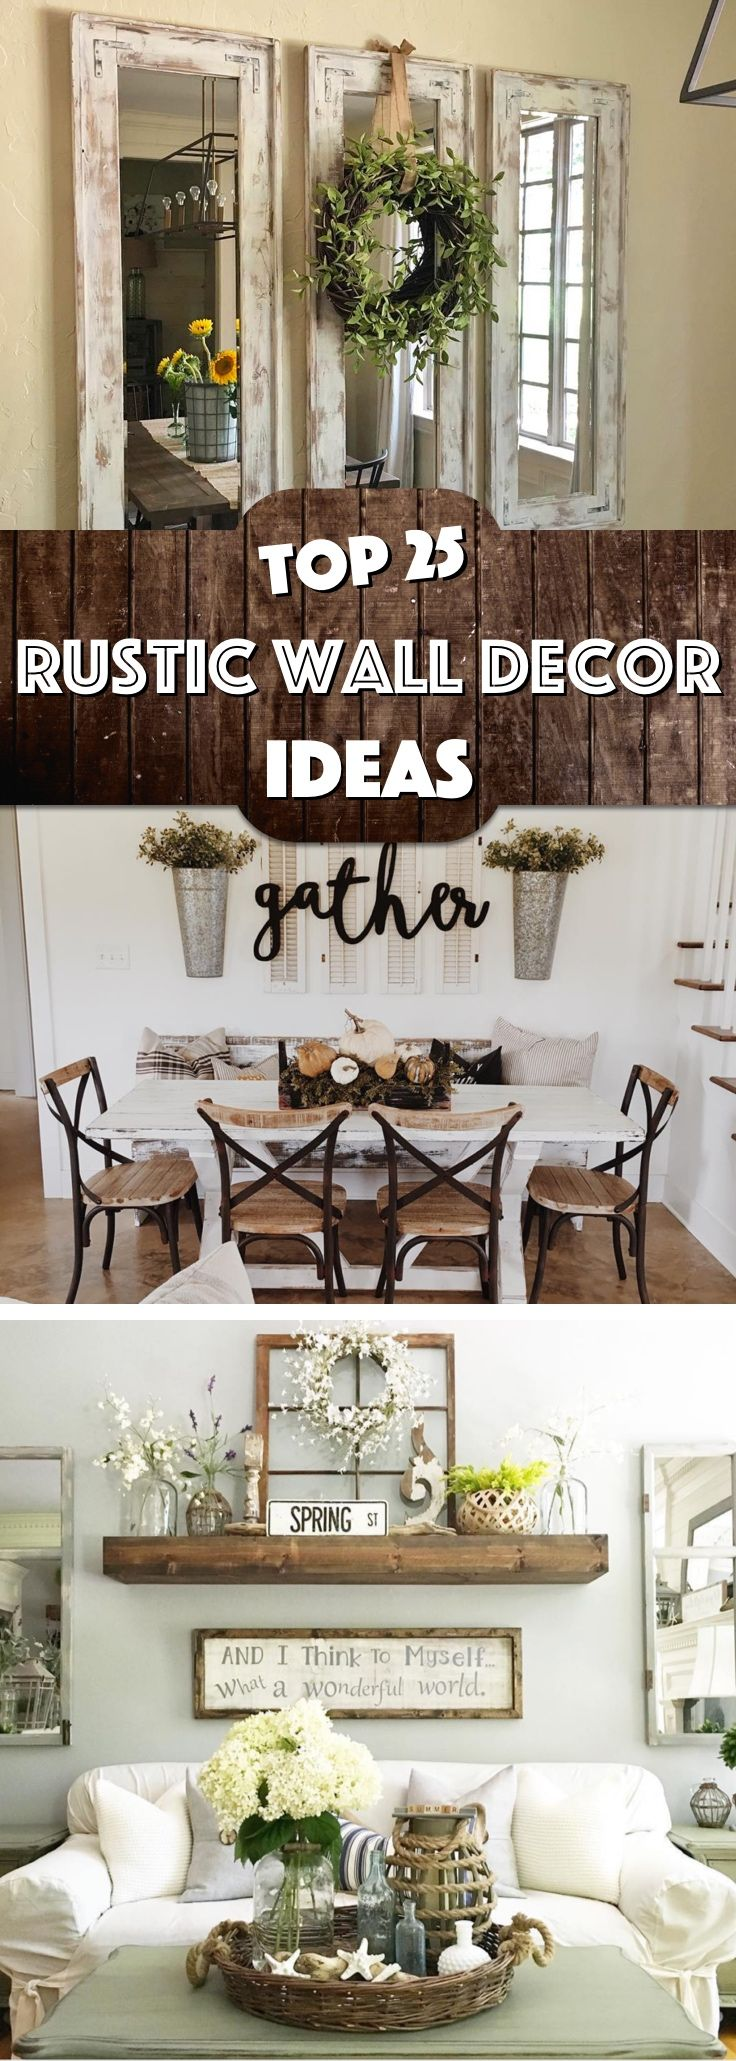 rustic decor ideas living room. 25 Must-Try Rustic Wall Decor Ideas Featuring The Most Amazing Intended Imperfections Living Room